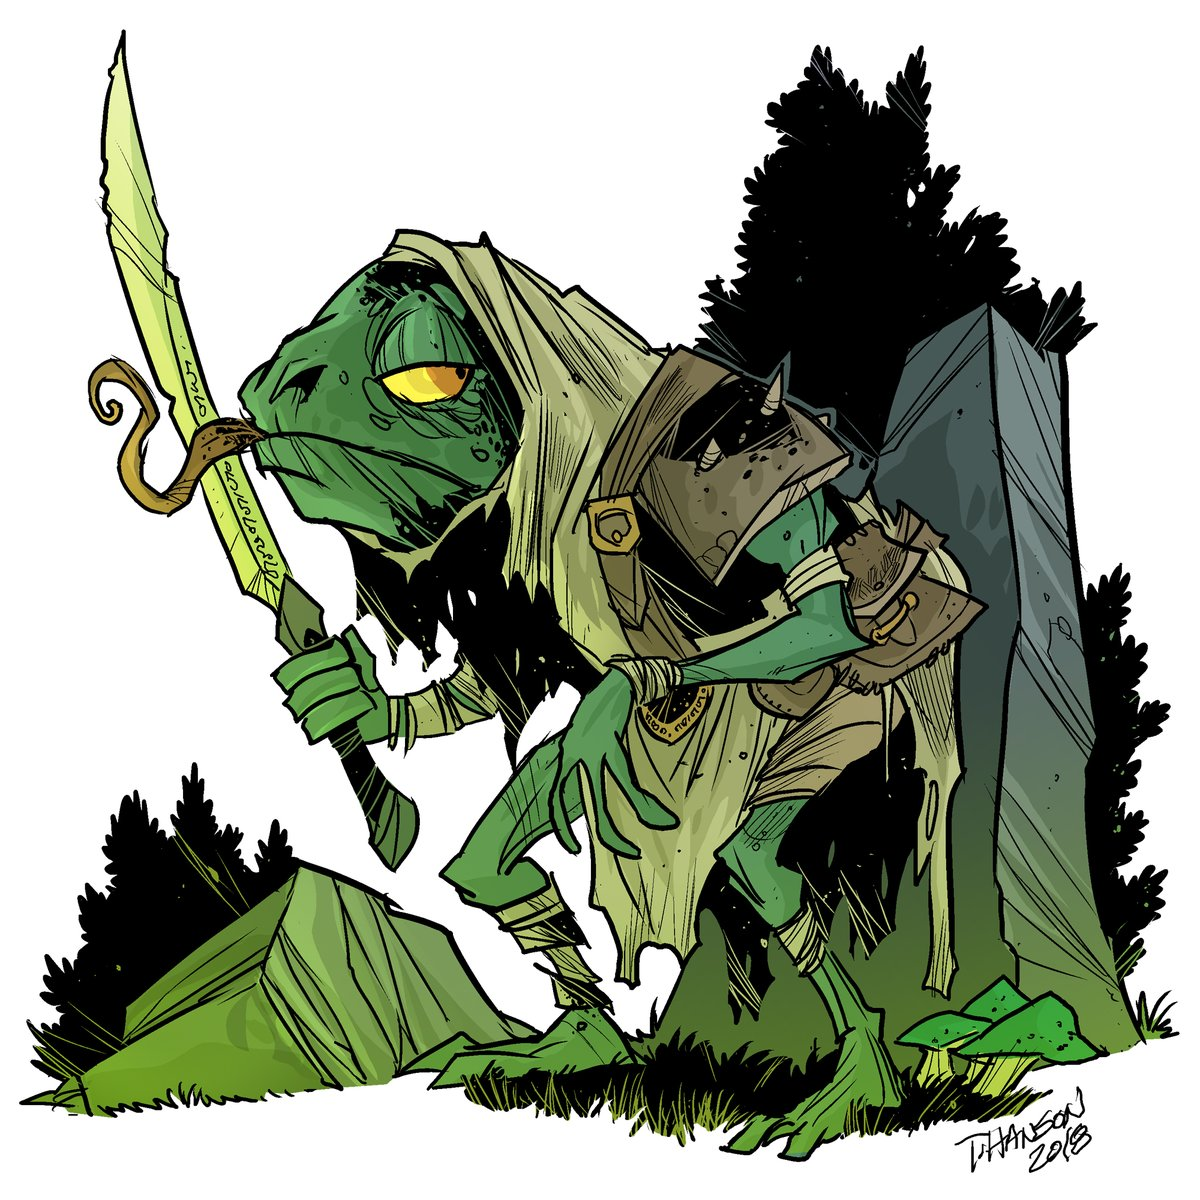 #dnd Monster Monday! Here's the Toadman from Monsters of Feyland! The evil henchman (henchfrog) of the Frog Witch. Book available @DriveThruRPG https://t.co/s6AN6QPARV or at our pre-order store: https://t.co/neUJmdWxvy https://t.co/5o5tiaCVxT